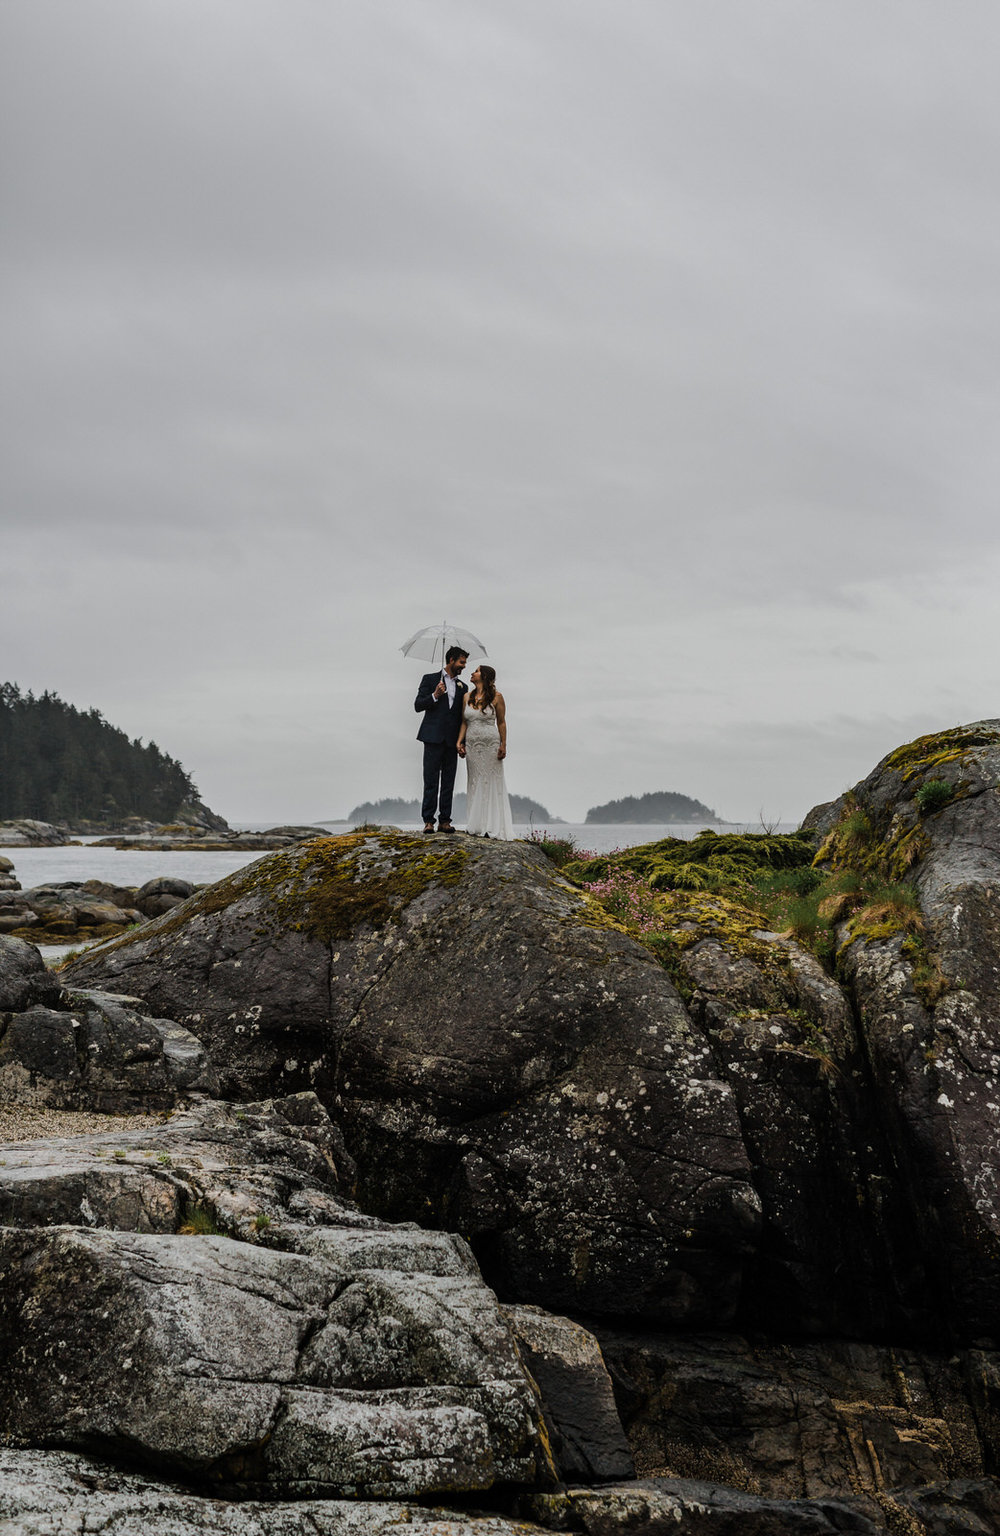 Sunshine Coast BC Elopement - Jennifer Picard Photography - IMG_6408.jpg